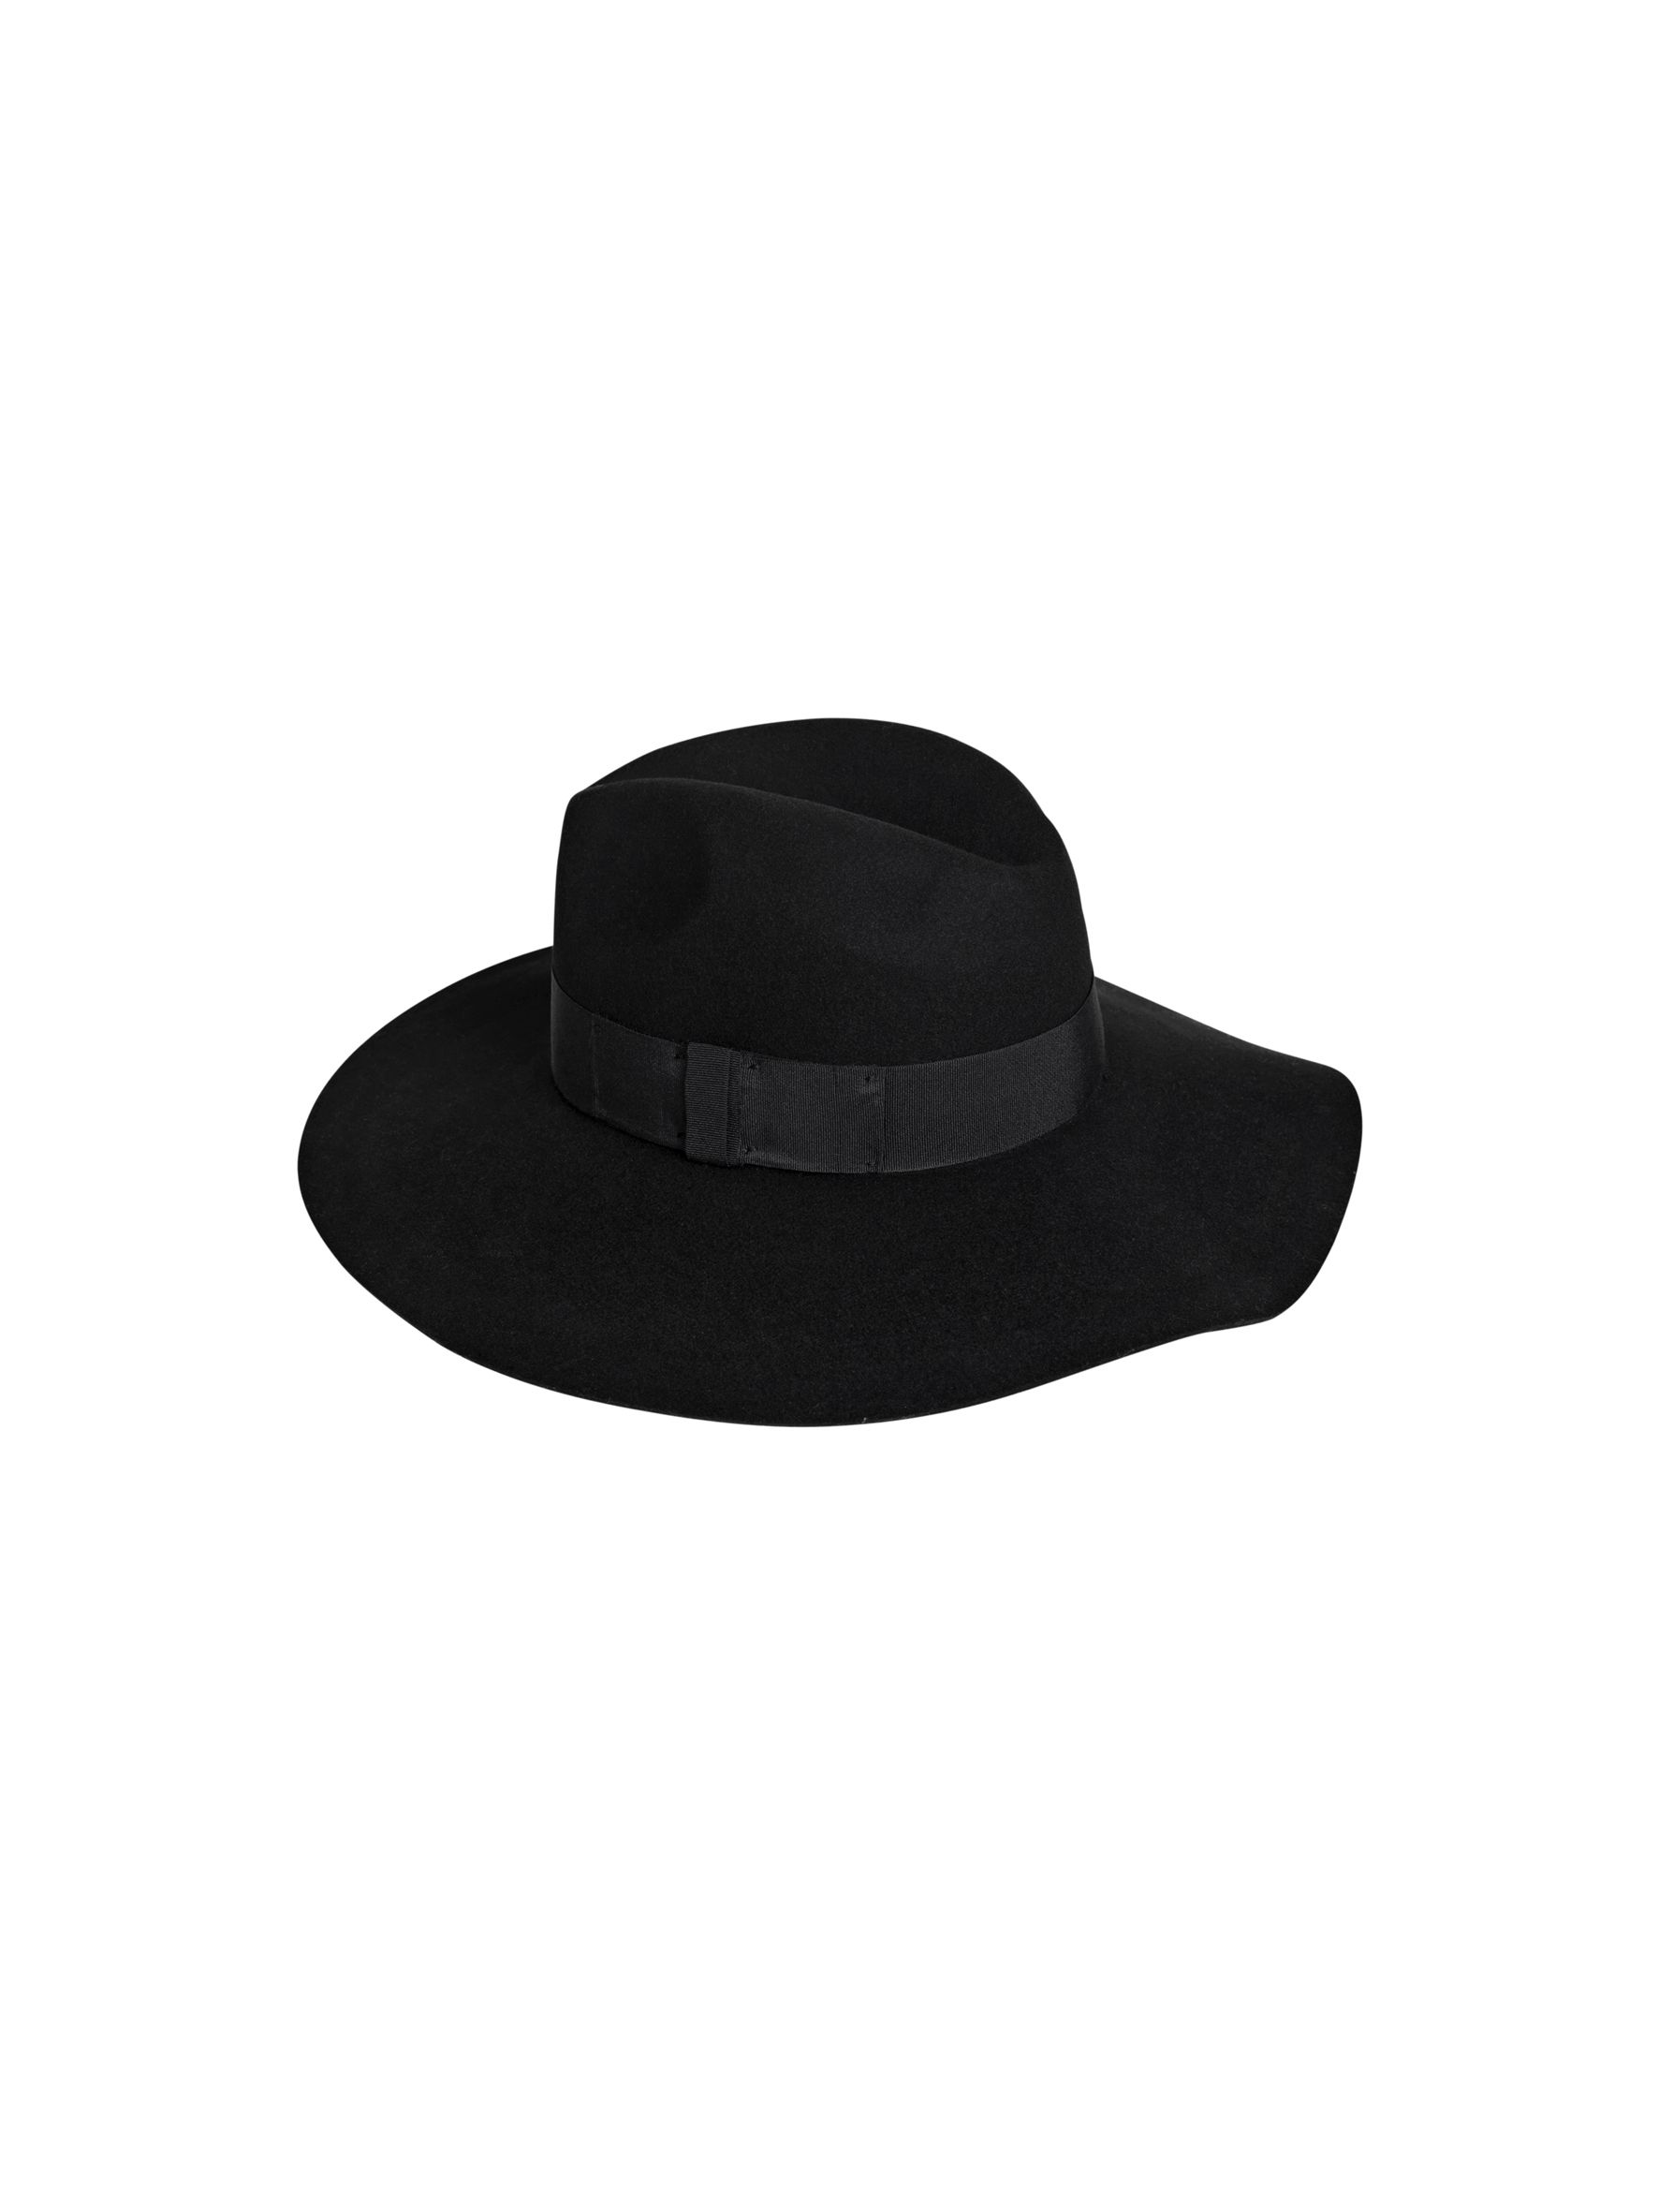 Obila hat - AWLOOK005 | By Malene Birger